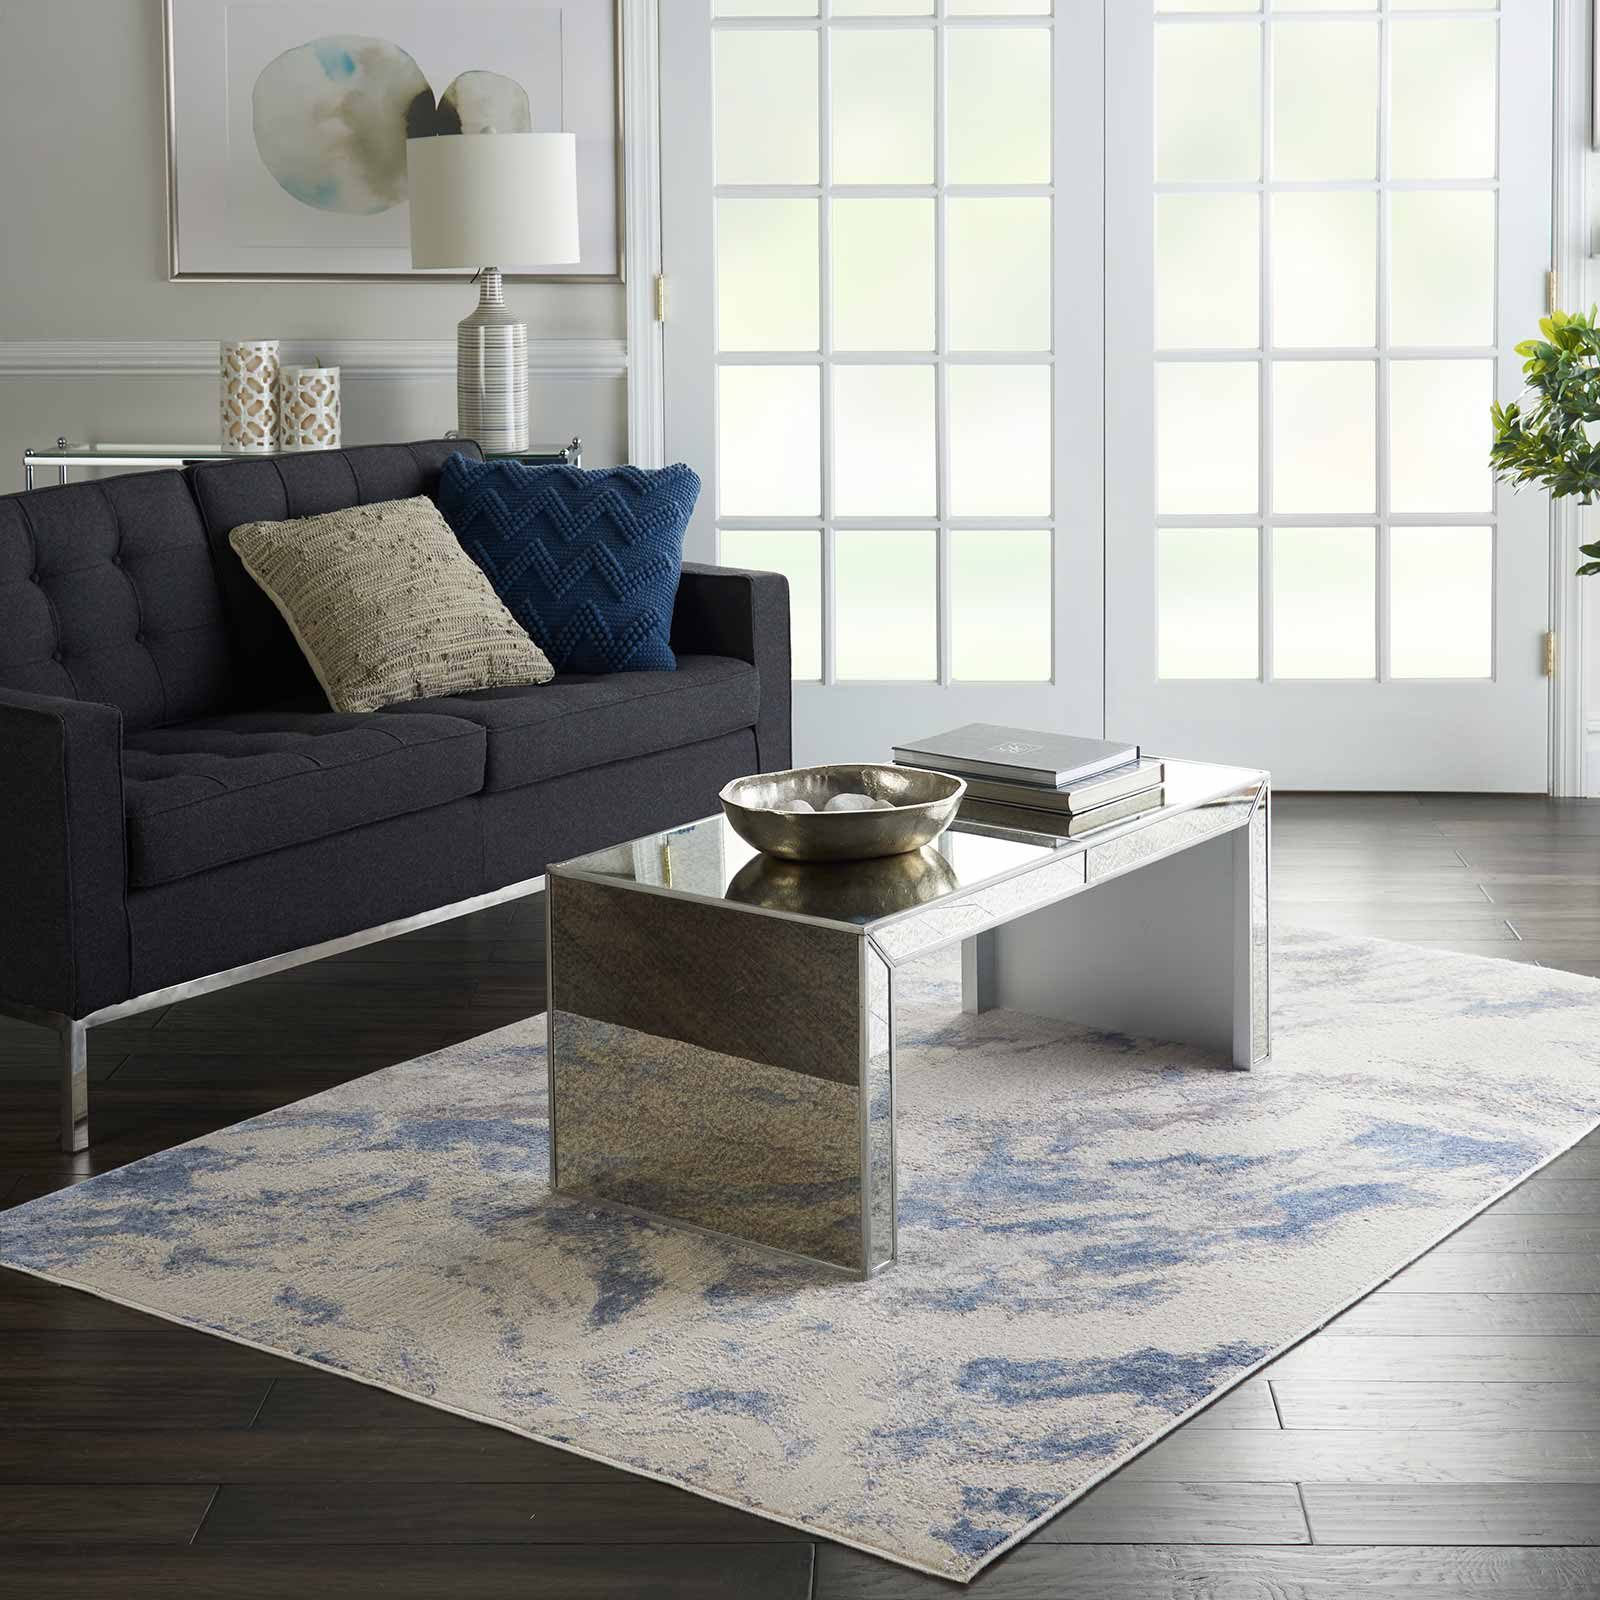 Nourison rug Silky Textures SLY03 BLUE IVORY GREY 5x7 099446710086 interior 4 C